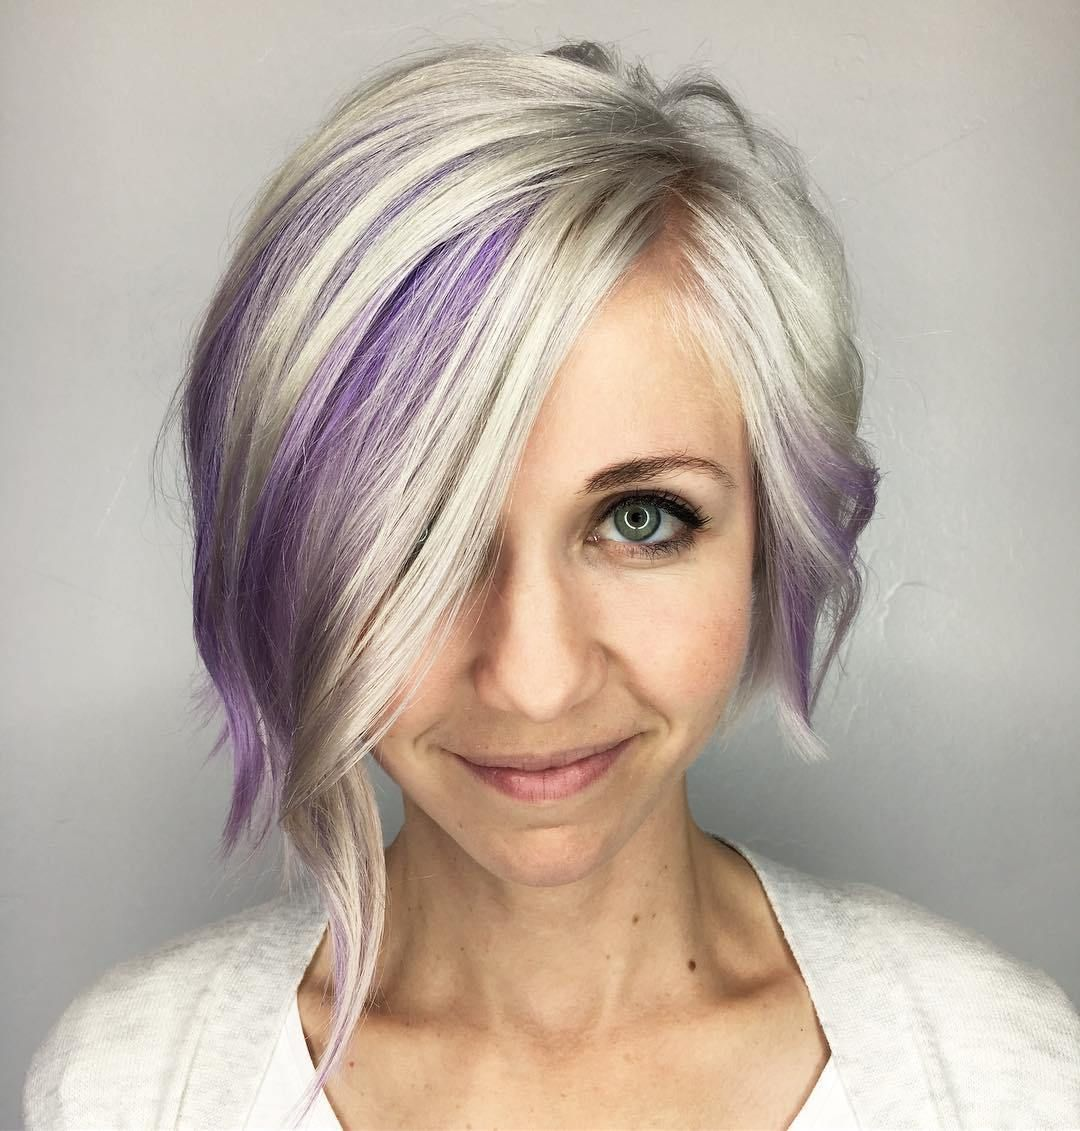 100 Mind Blowing Short Hairstyles For Fine Hair Short Hair Styles Hair Styles Fine Hair